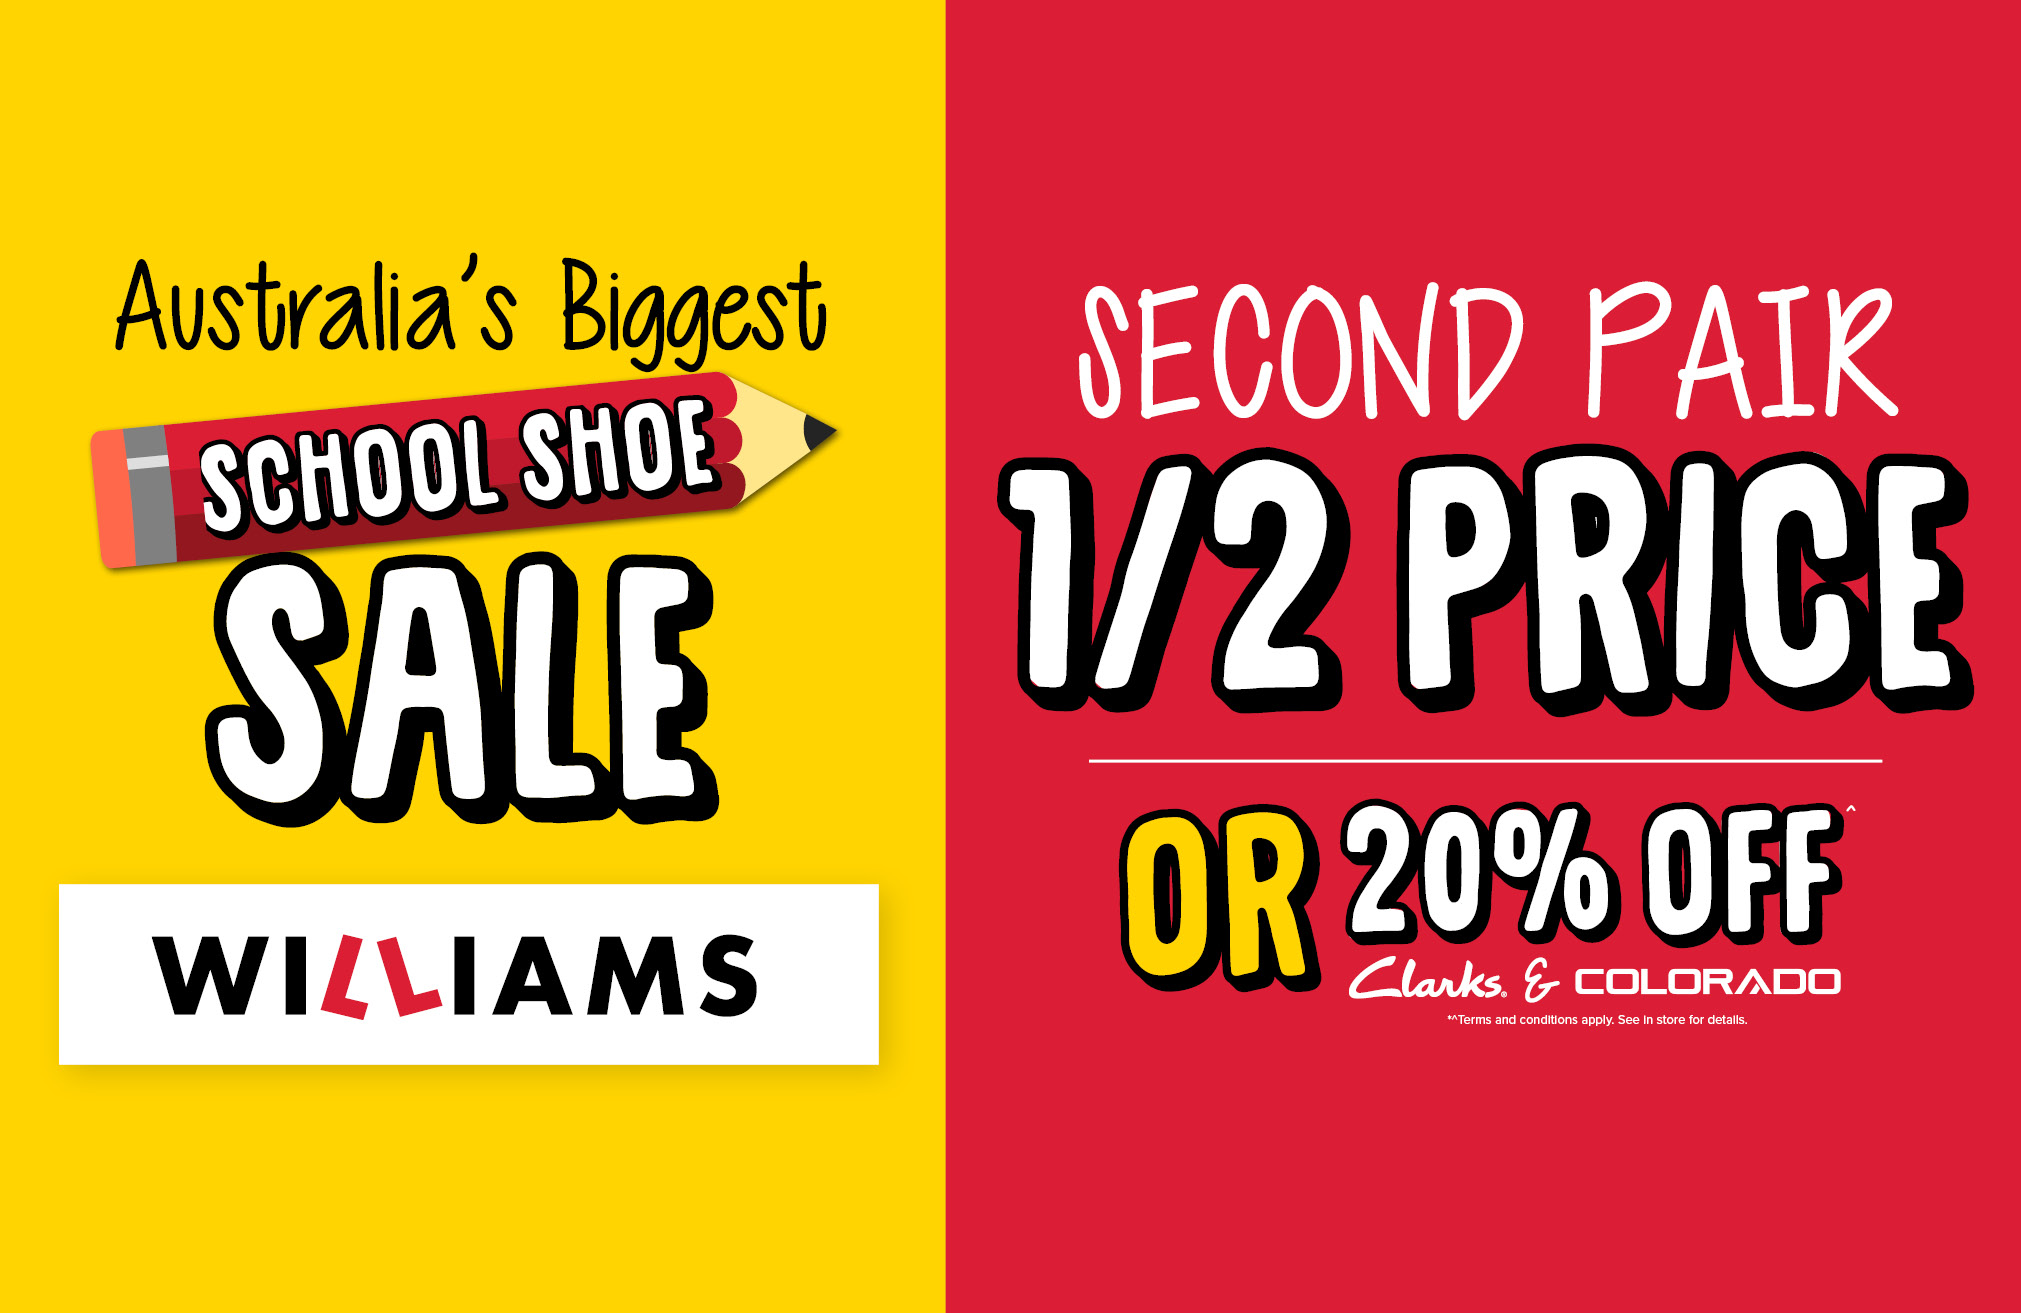 Williams Back to School offer